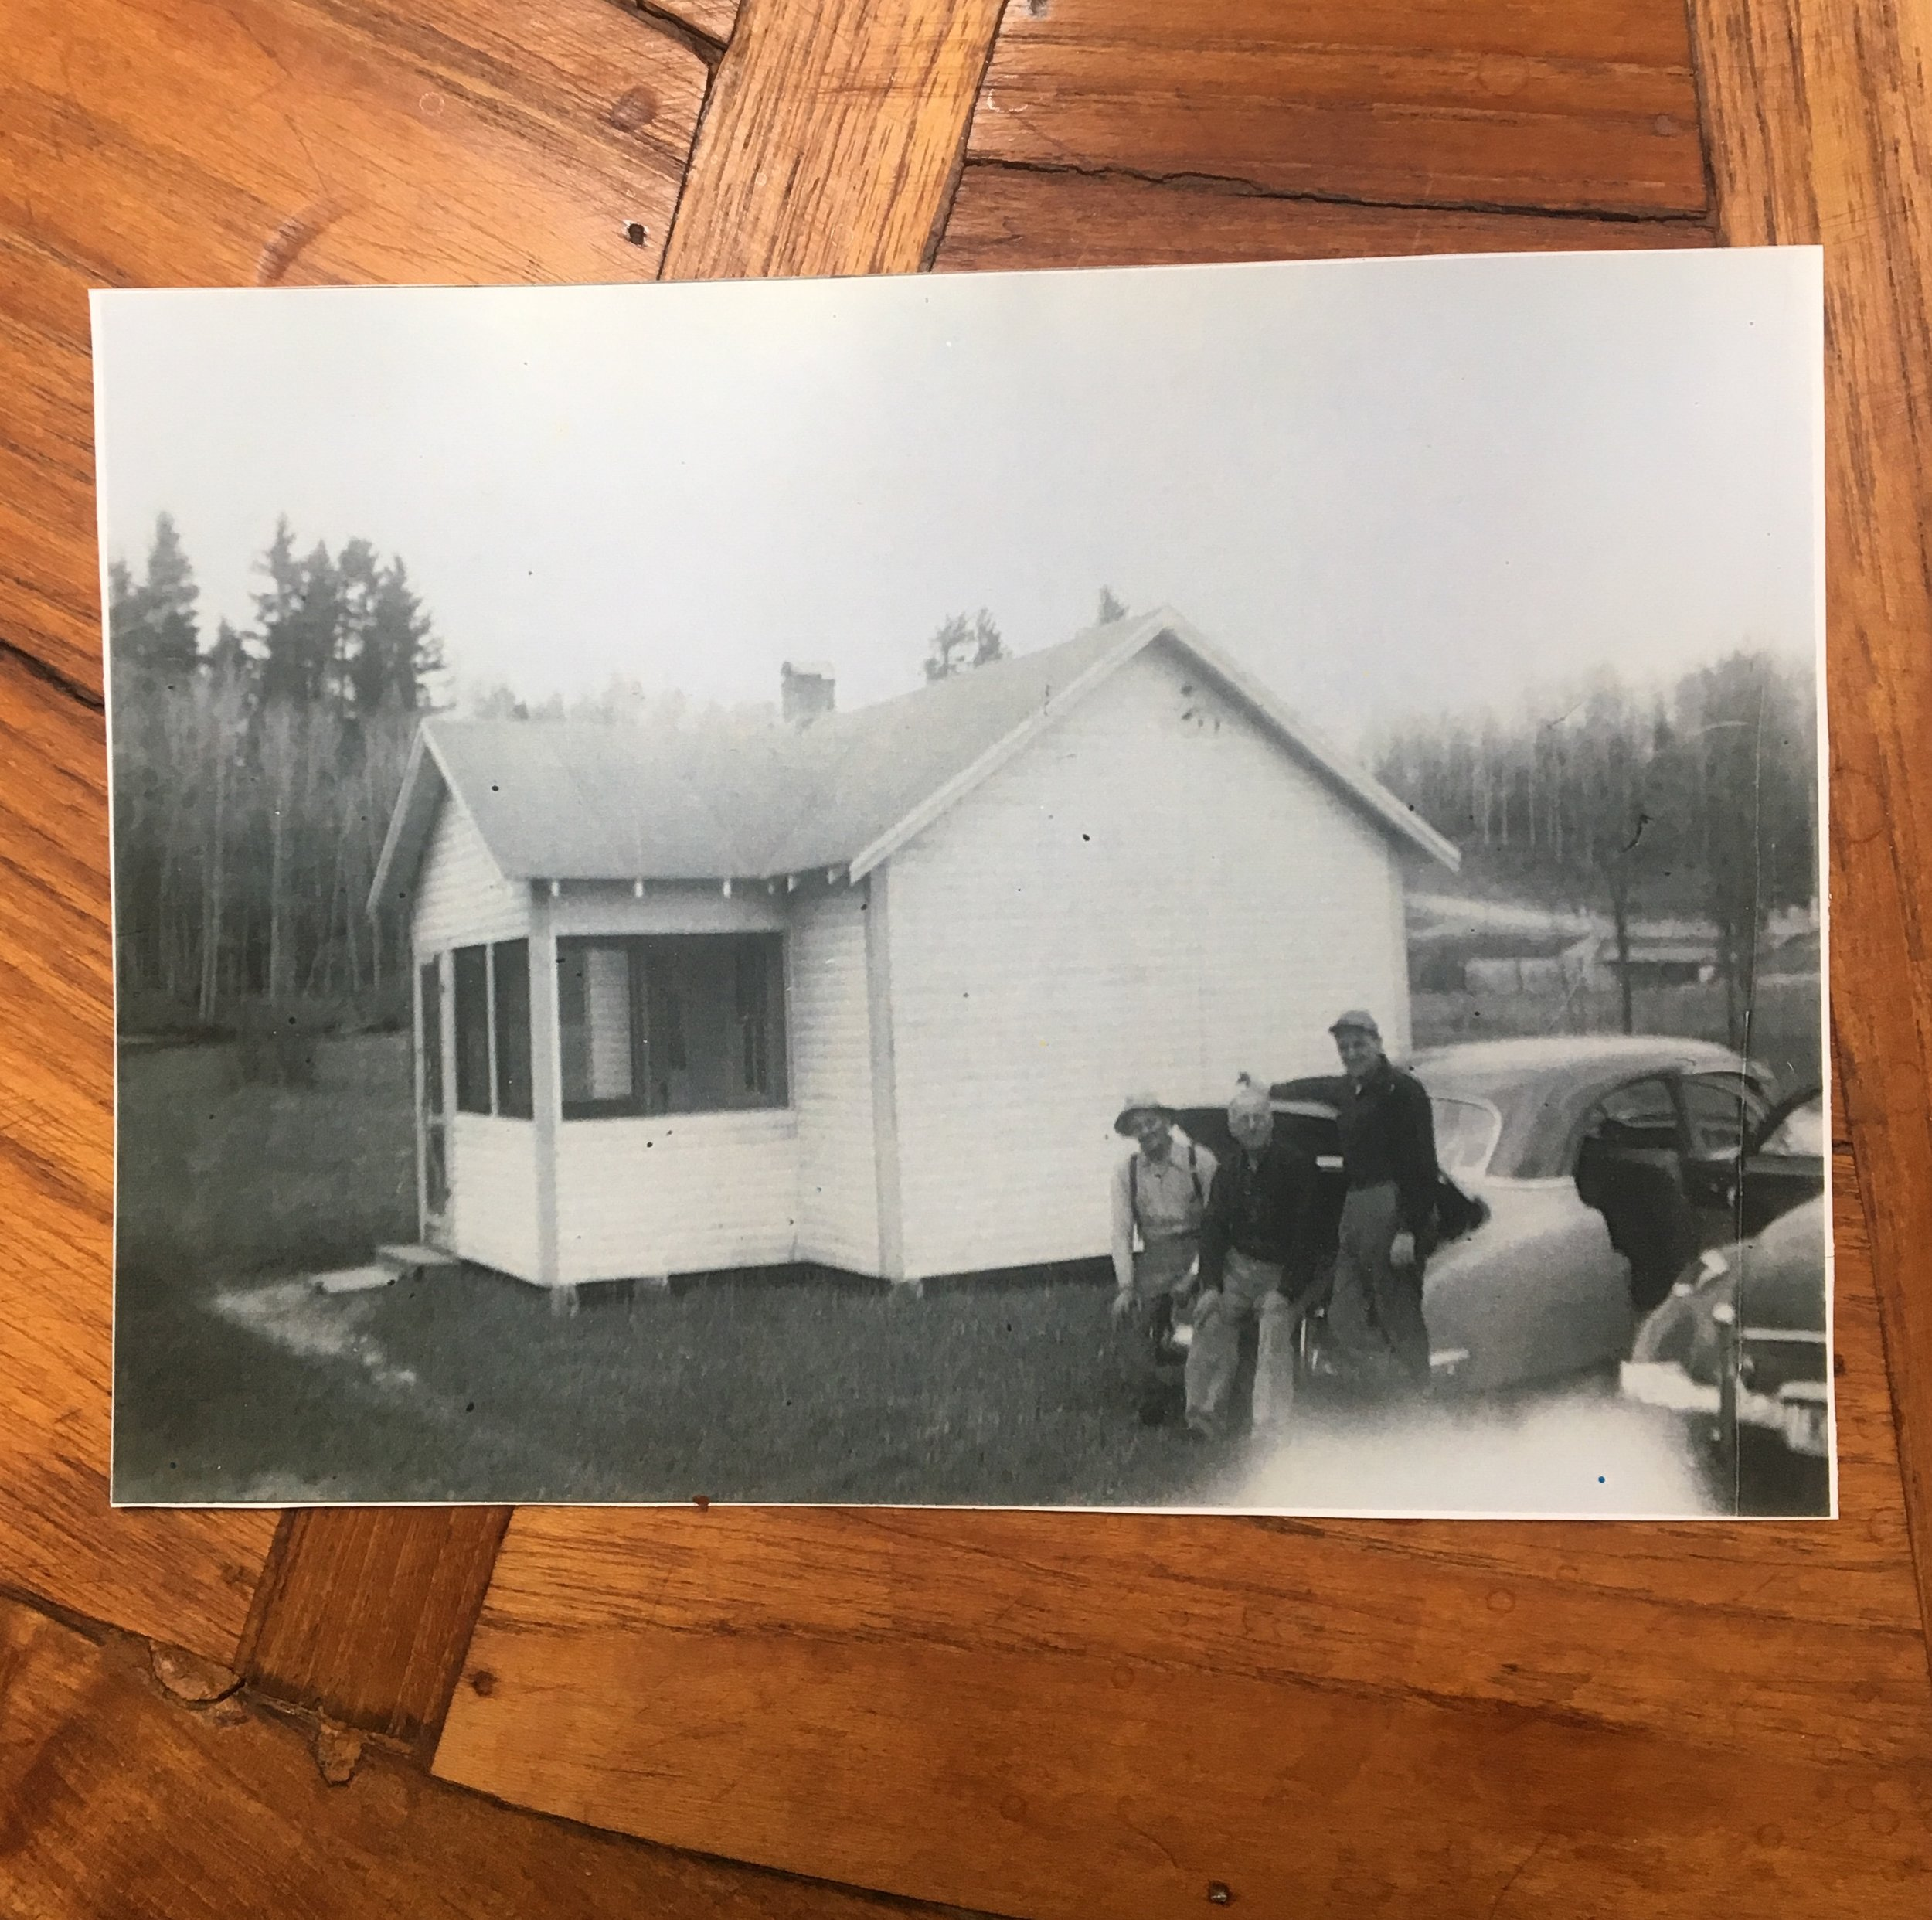 A Cabin on the Flats - This cabin once stood on The Flats, where the current resort owner's Red House stands today. Mc Masters Bridge is in the background. Denny stayed in these cabins in the late 1940's, when he was about 10 years old. Pictured left to right are then-owner Norman McCabe, Denny's grandfather Jack who passed in 1951 and a third person, unknown.